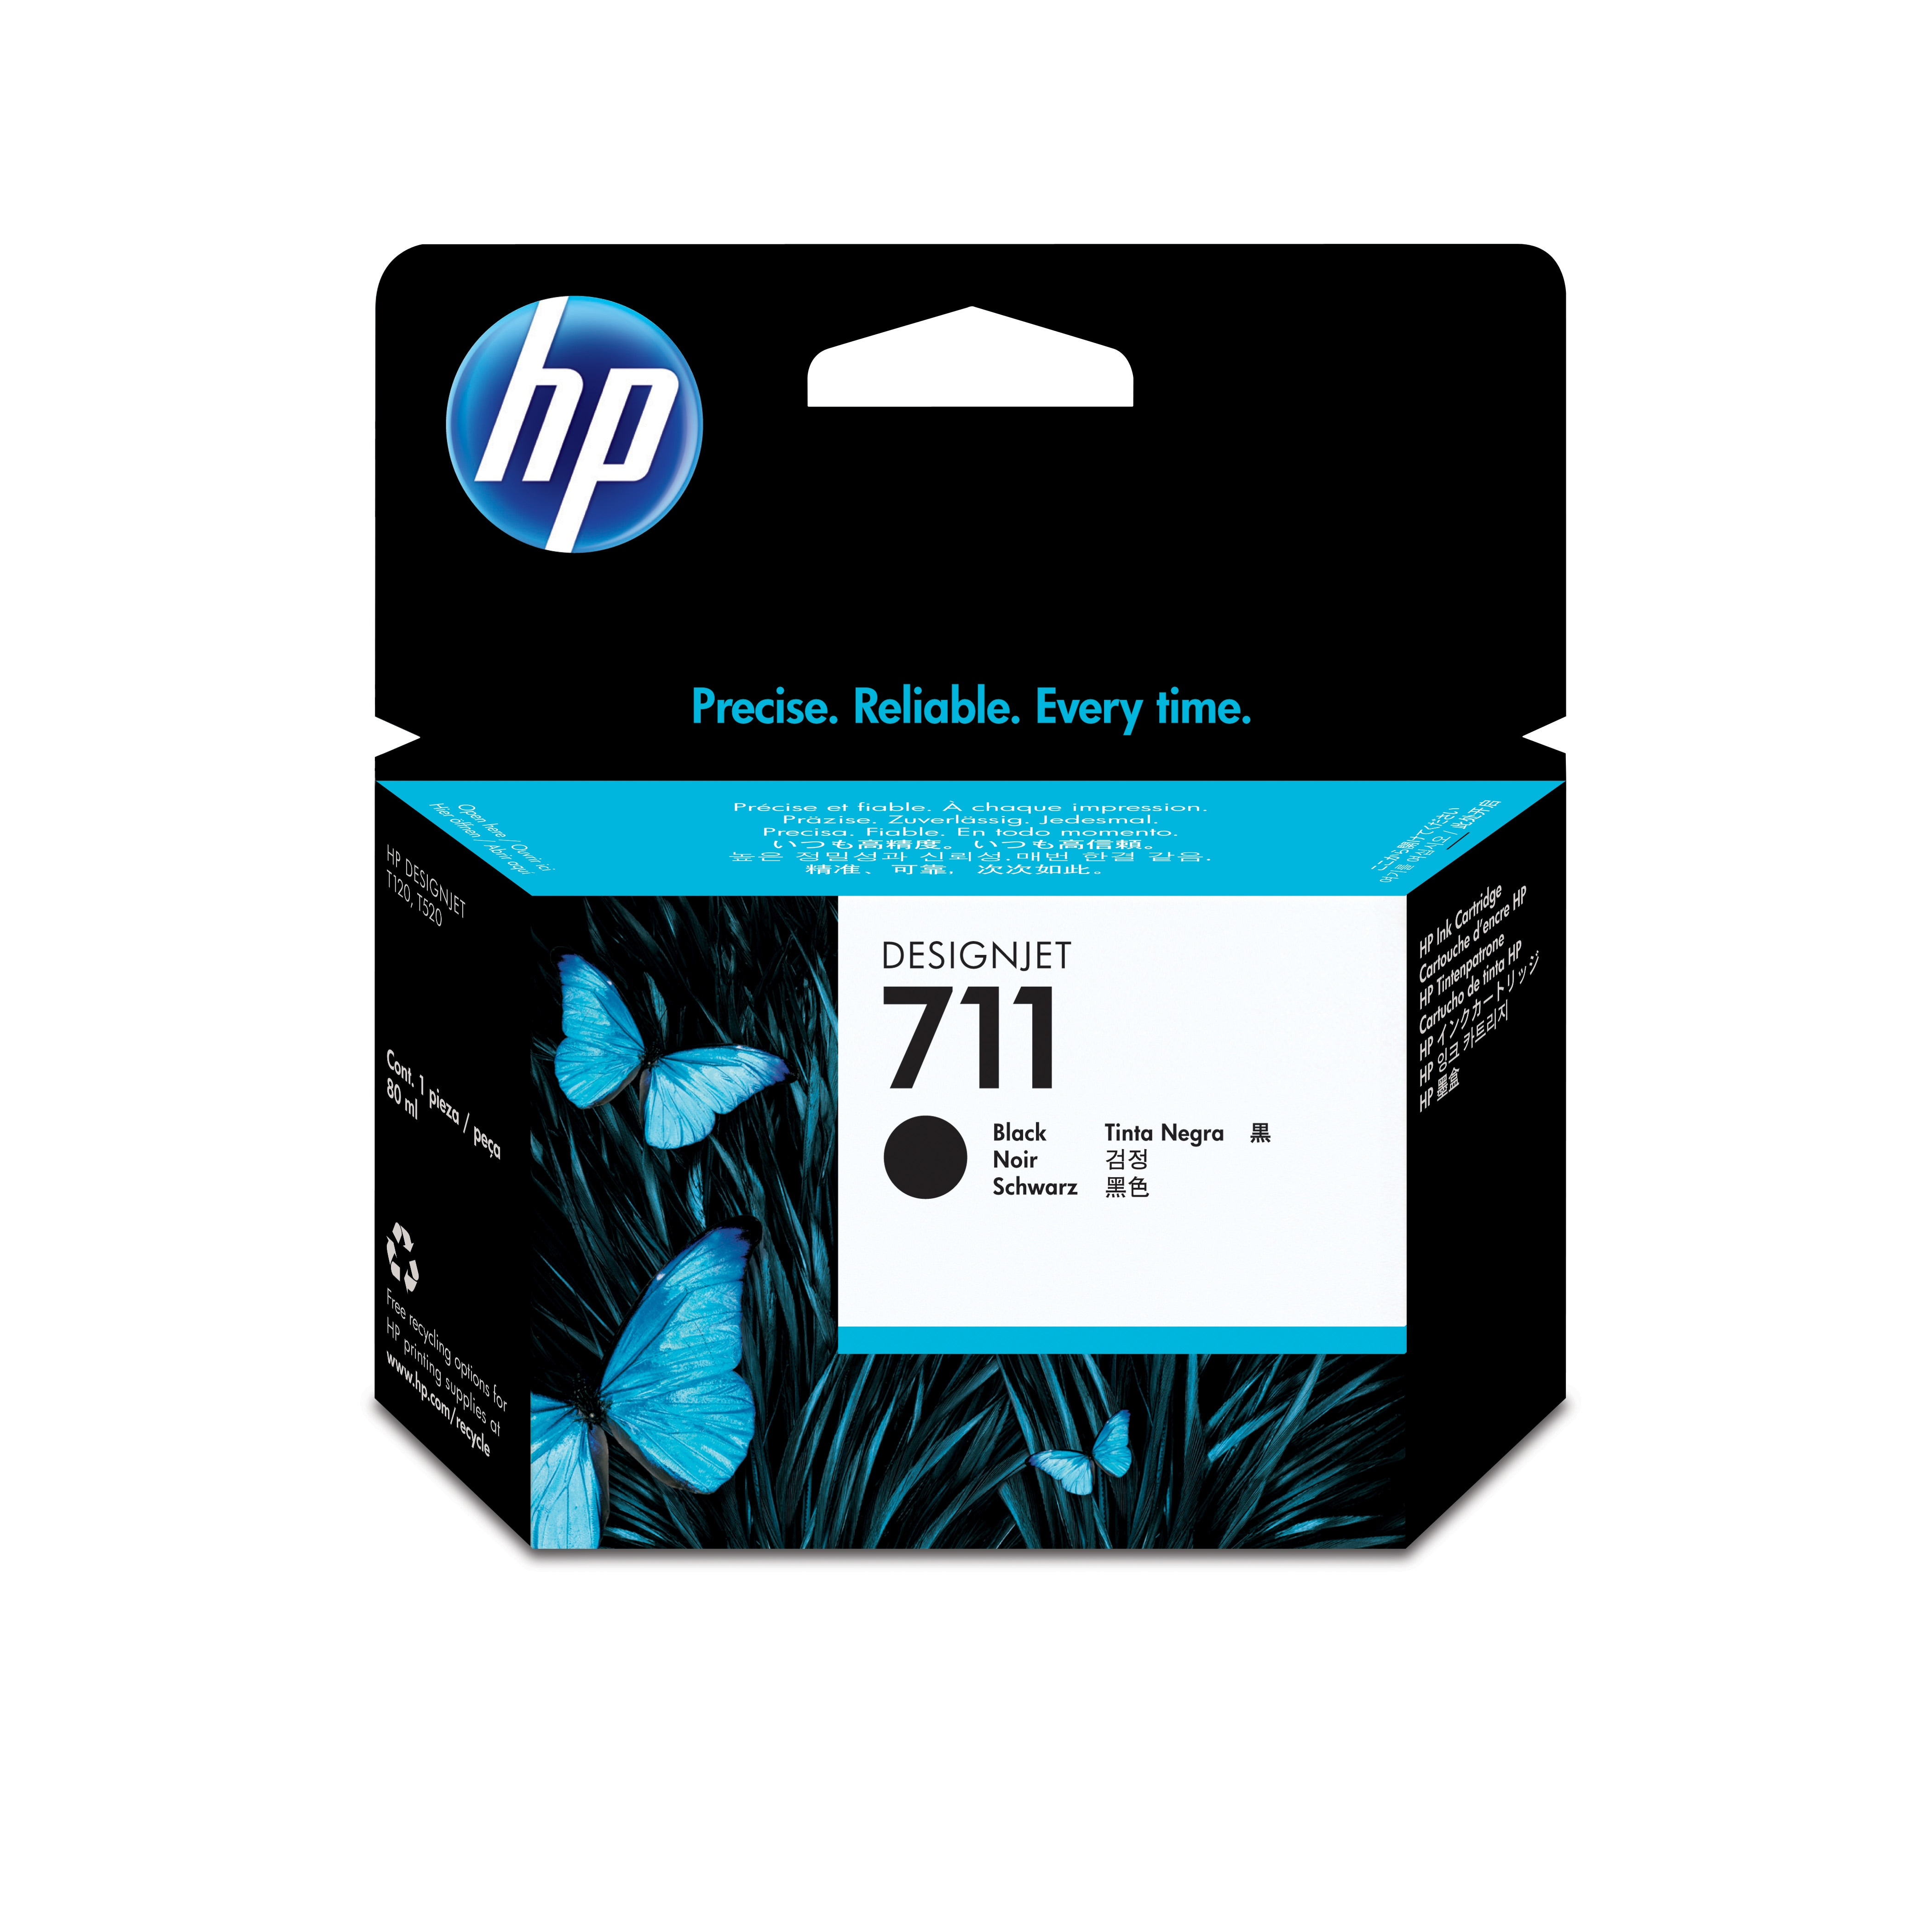 Hpcz133a       Hp 711 80-ml Black Ink         Cartridge                                                    - UF01